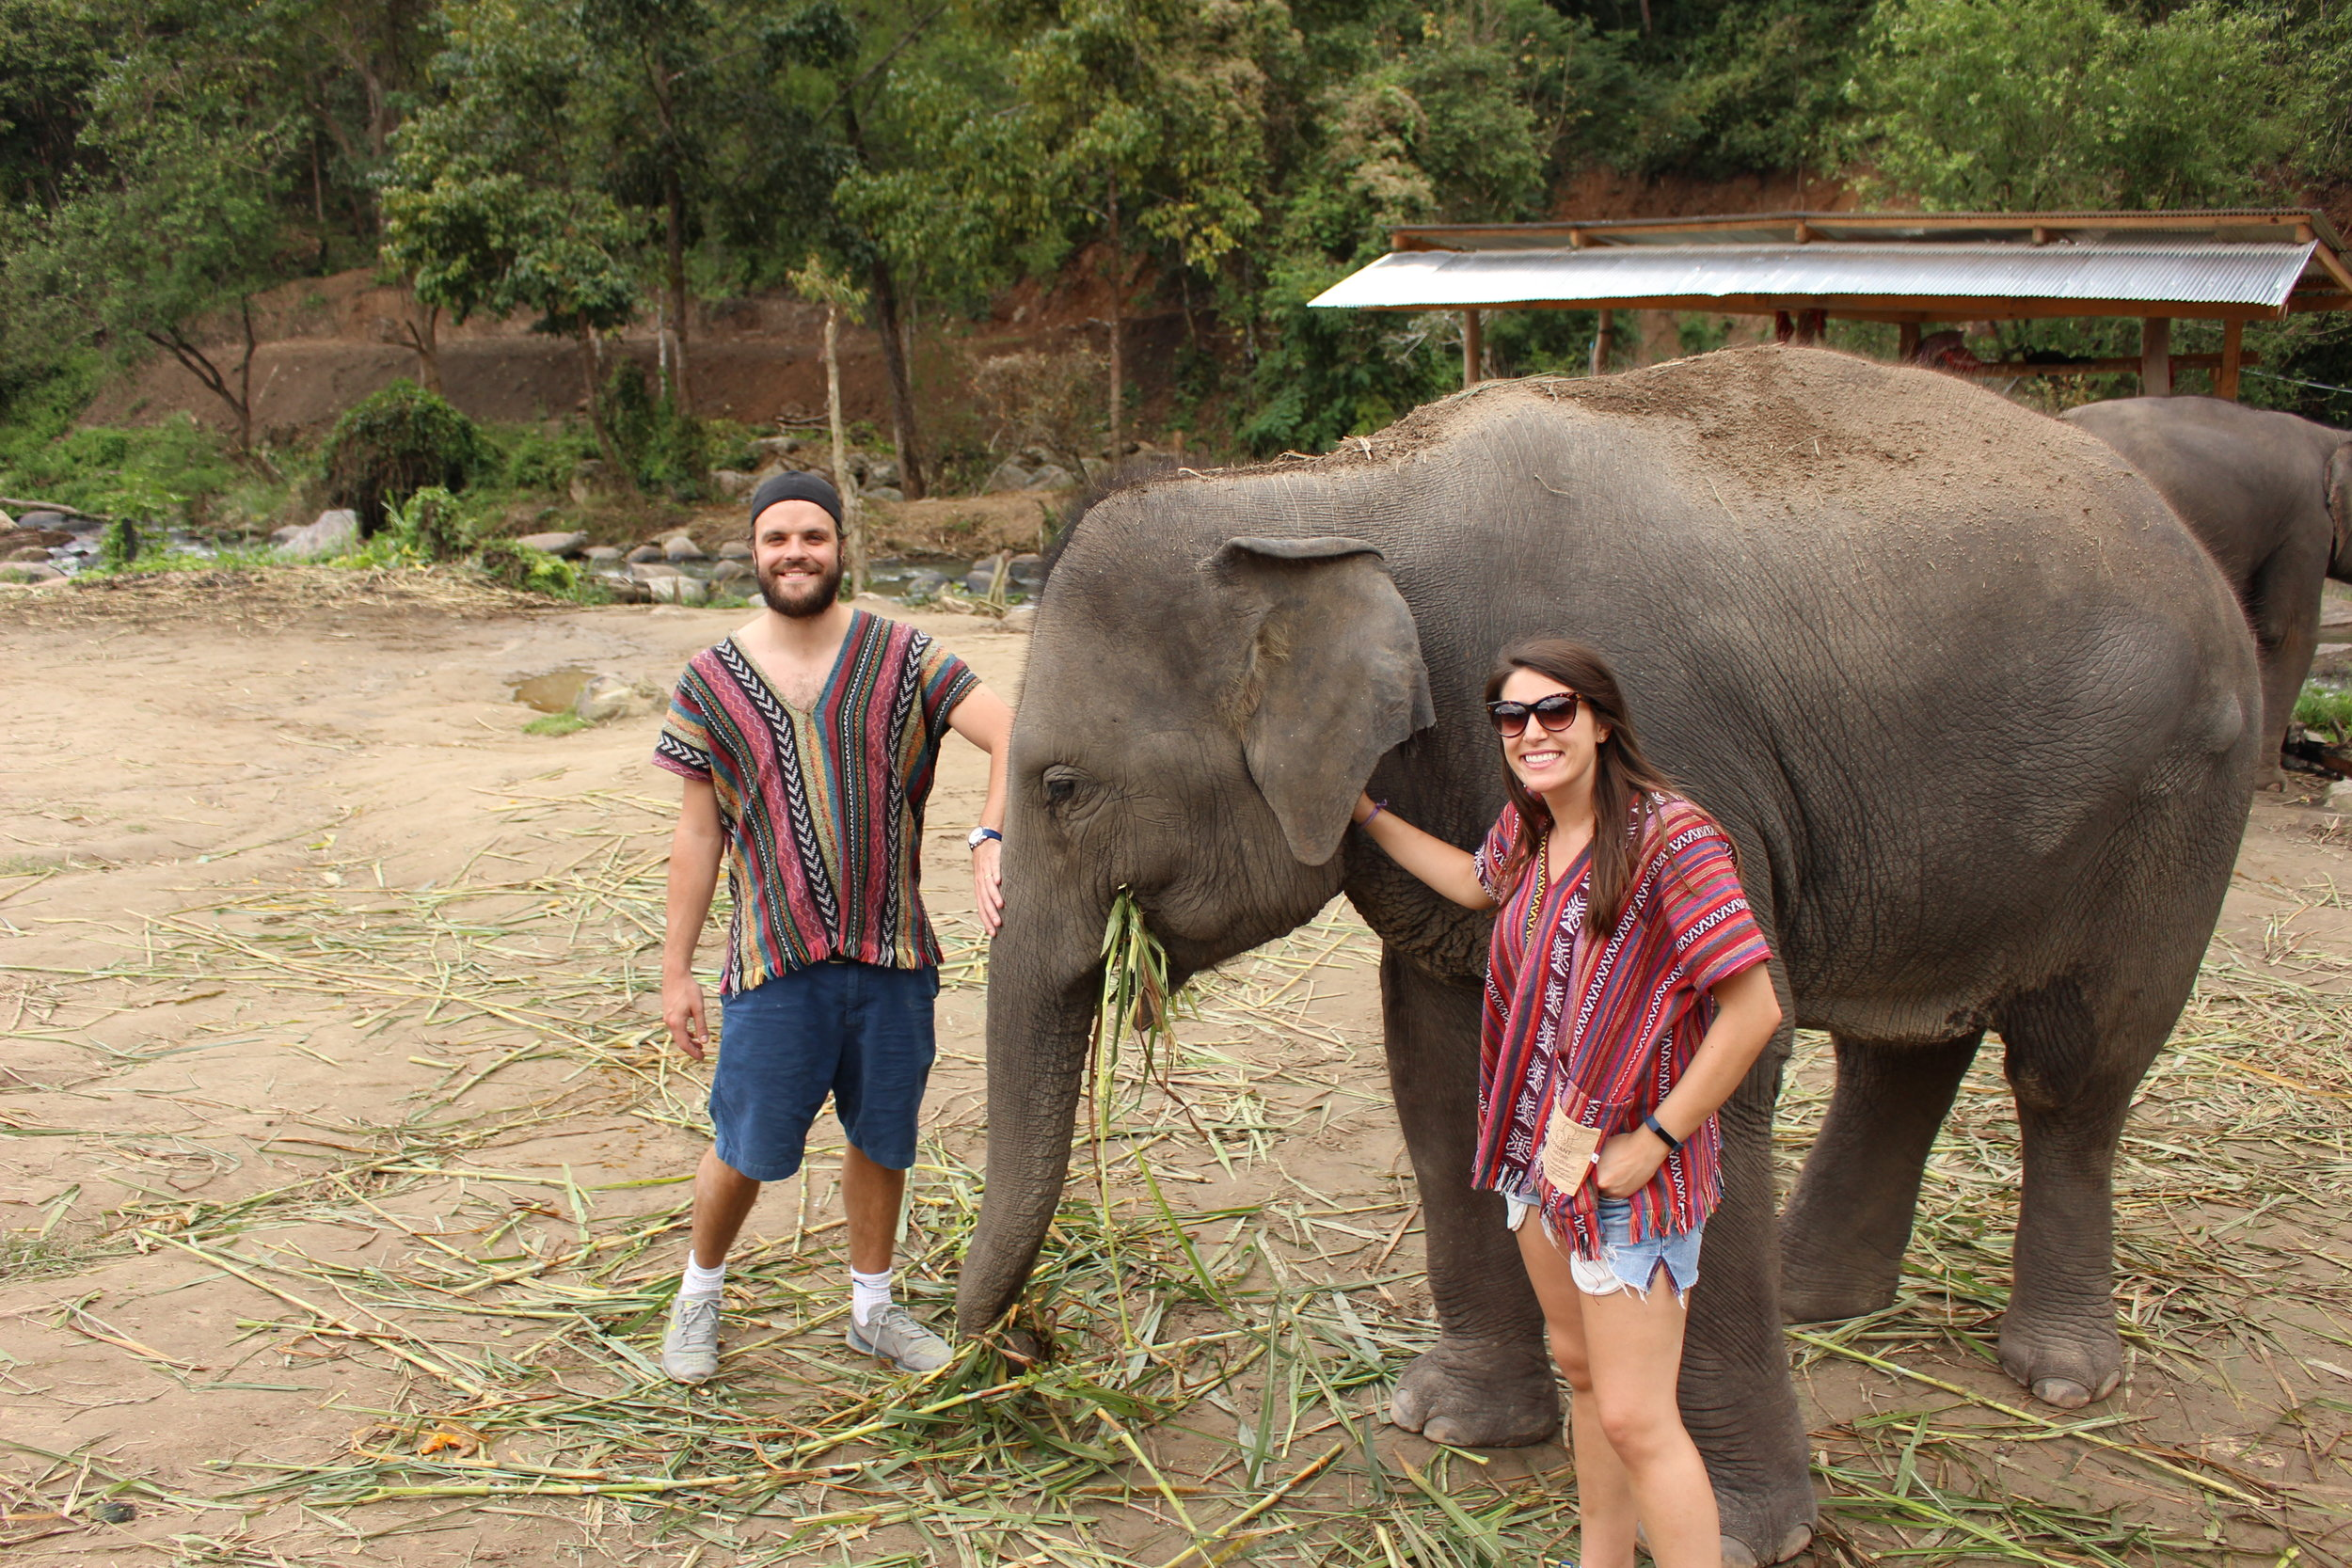 T & Phil with one of the elephants munching on bamboo leaves